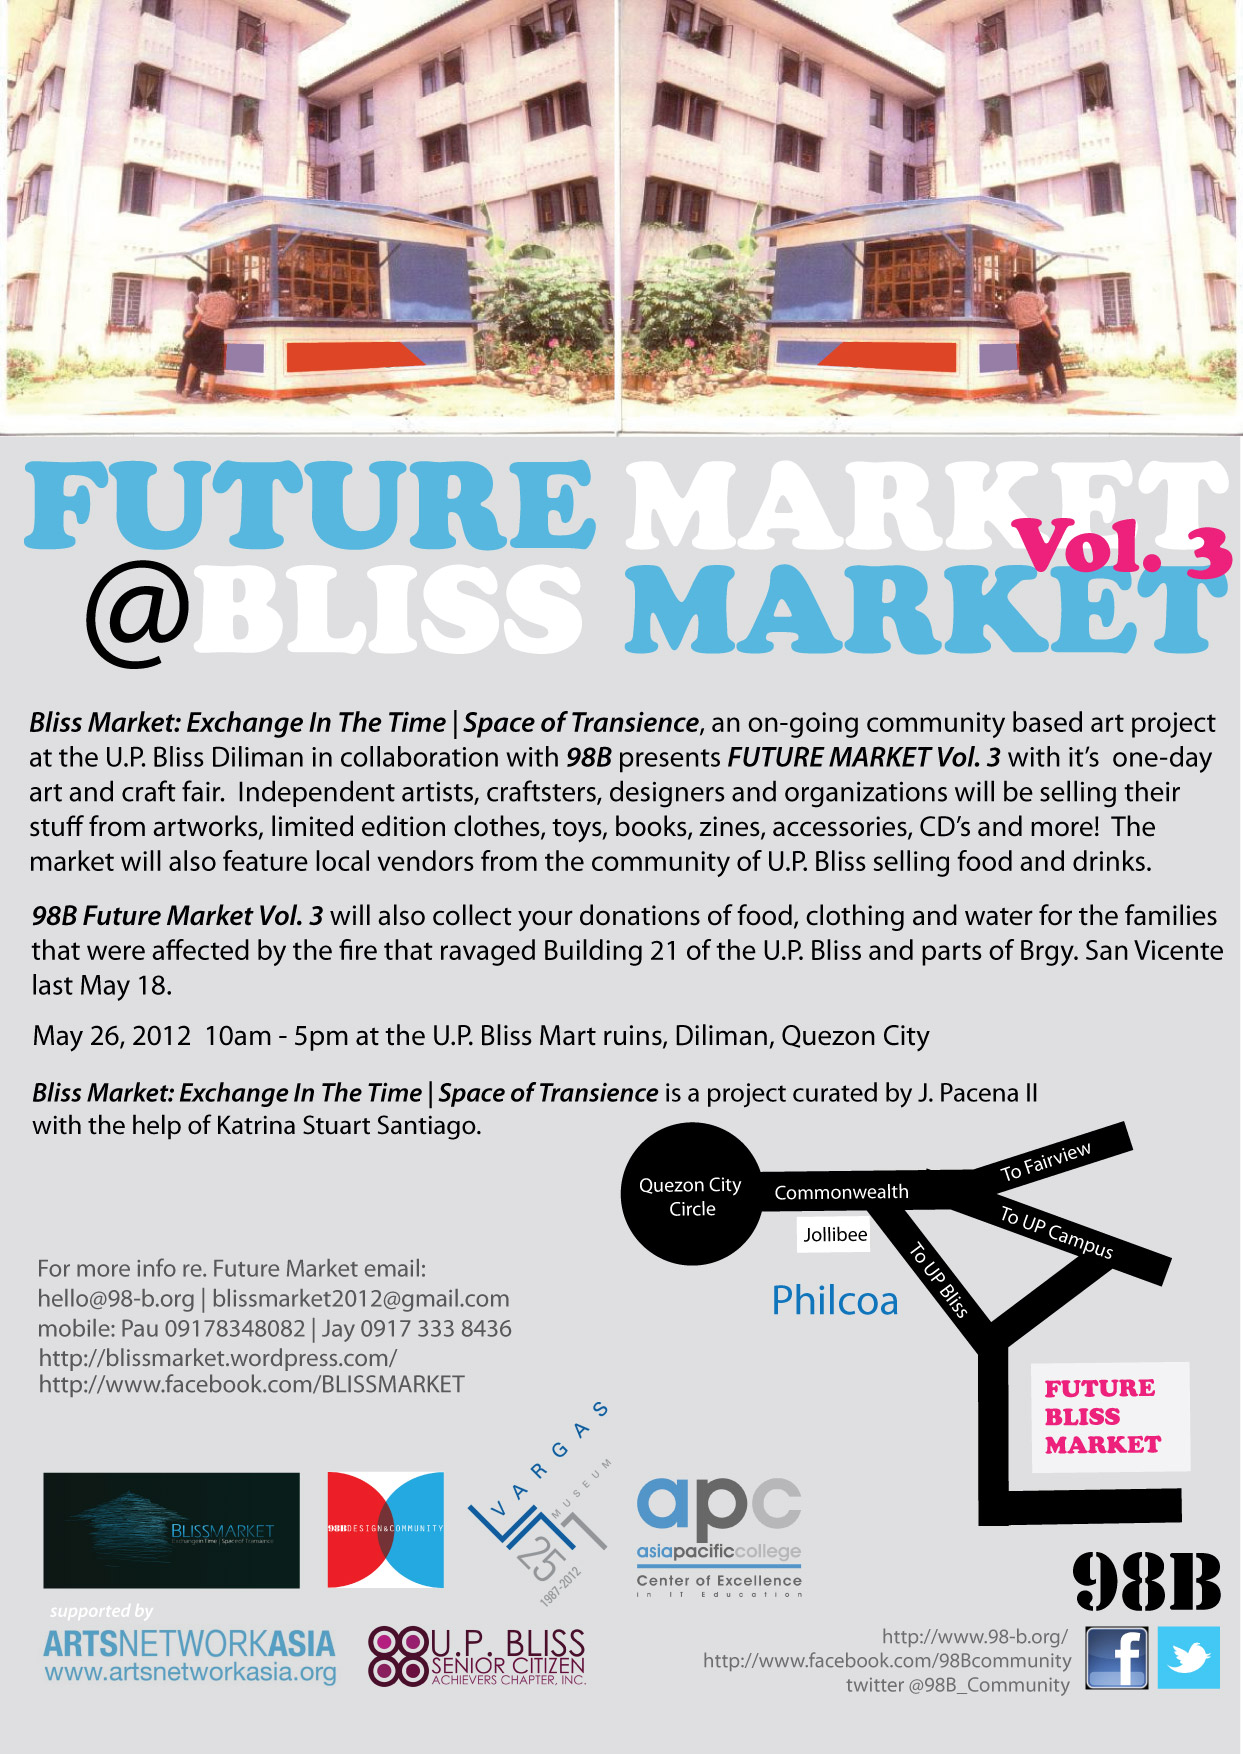 FUTURE MARKET Vol. 3 @ BLISS MARKET  May 26, 2012 10am - 5pm at the U.P. Bliss Mart ruins, Diliman, Quezon City Bliss Market: Exchange In The Time | Space of Transience, an on-going community based art project at the U.P. Bliss Diliman in collaboration with 98B presents FUTURE MARKET Vol. 3 with it's one-day art and craft fair. Independent artists, craftsters, designers and organizations will be selling their stuff from artworks, limited edition clothes, toys, books, zines, accessories, CD's and more! The market will also feature local vendors from the community of U.P. Bliss selling food and drinks.  98B Future Market Vol. 3 will also collect your donations of food, clothing and water for the families that were affected by the fire that ravaged Building 21 of the U.P. Bliss and parts of Brgy. San Vicente last May 18. Bliss Market: Exchange In The Time | Space of Transience is a project curated by J. Pacena II with the help of Katrina Stuart Santiago. For more info re. Future Market email:  hello@98-b.org | blissmarket2012@gmail.com  mobile: Pau 09178348082 | Jay 0917 333 8436  http://blissmarket.wordpress.com/ http://www.facebook.com/BLISSMARKET http://www.98-b.org/